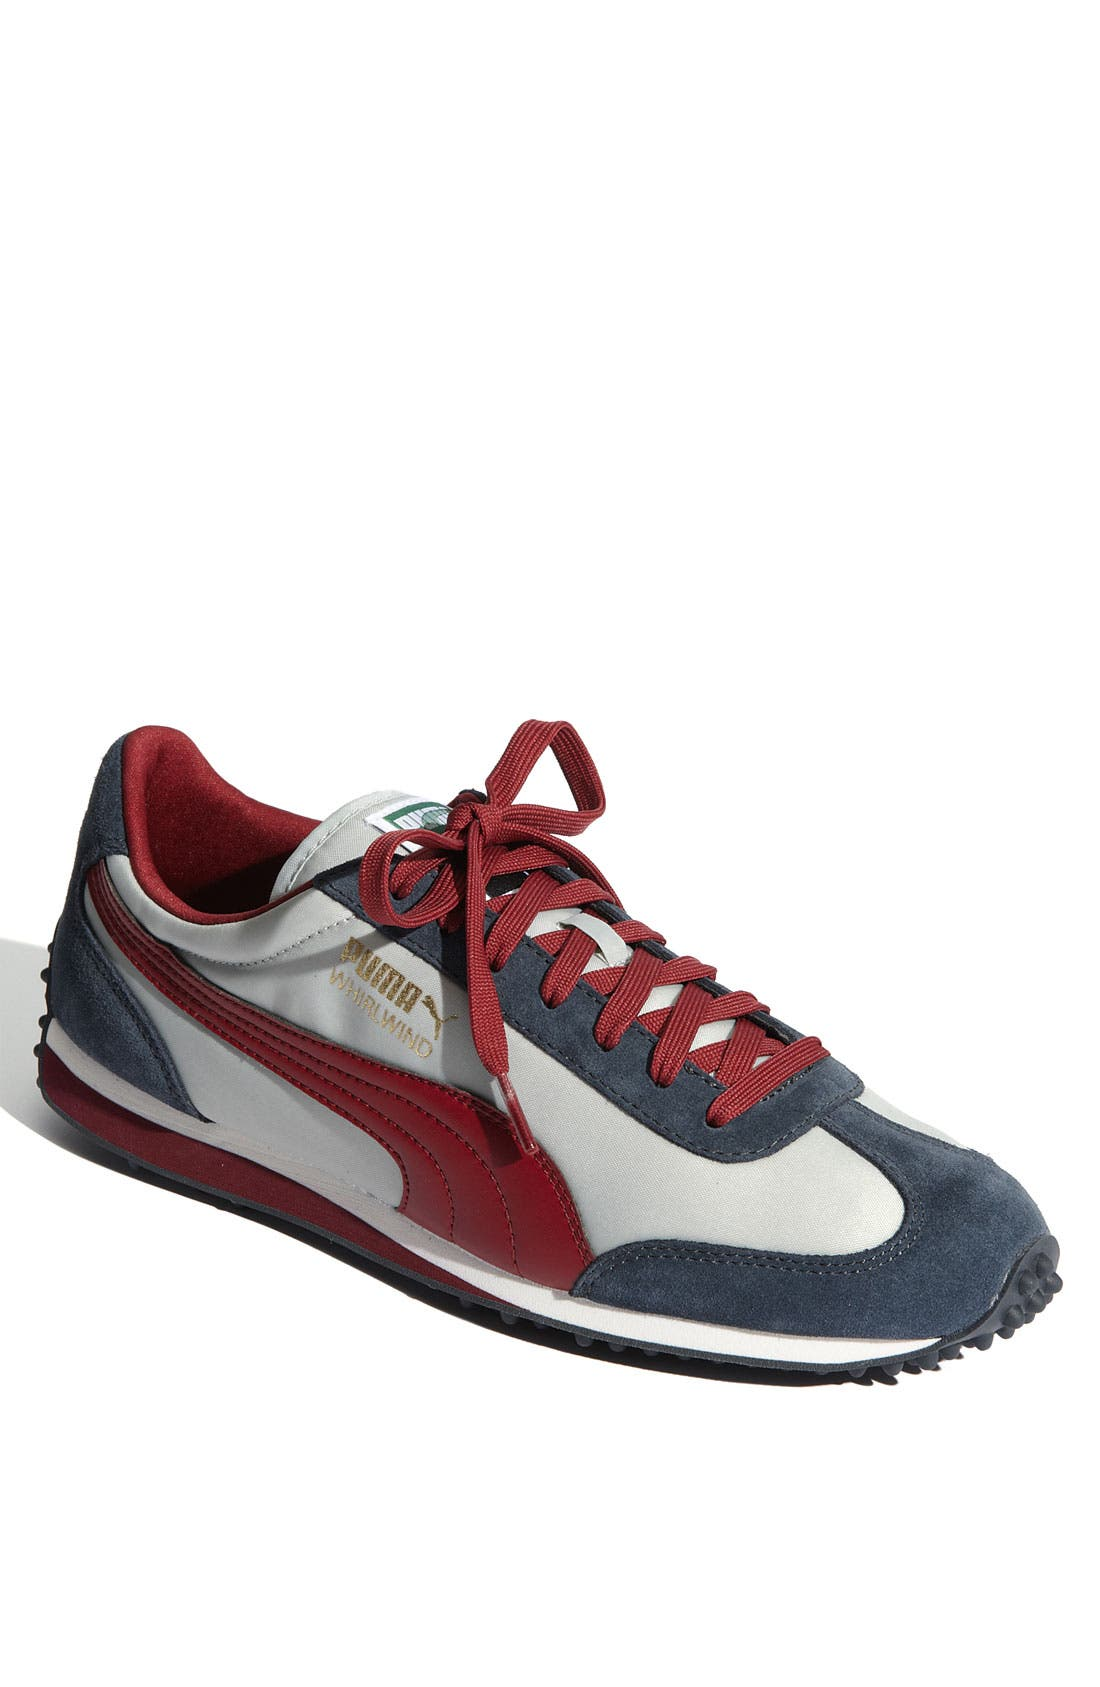 Main Image - PUMA 'Whirlwind Classic' Sneaker (Online Exclusive)